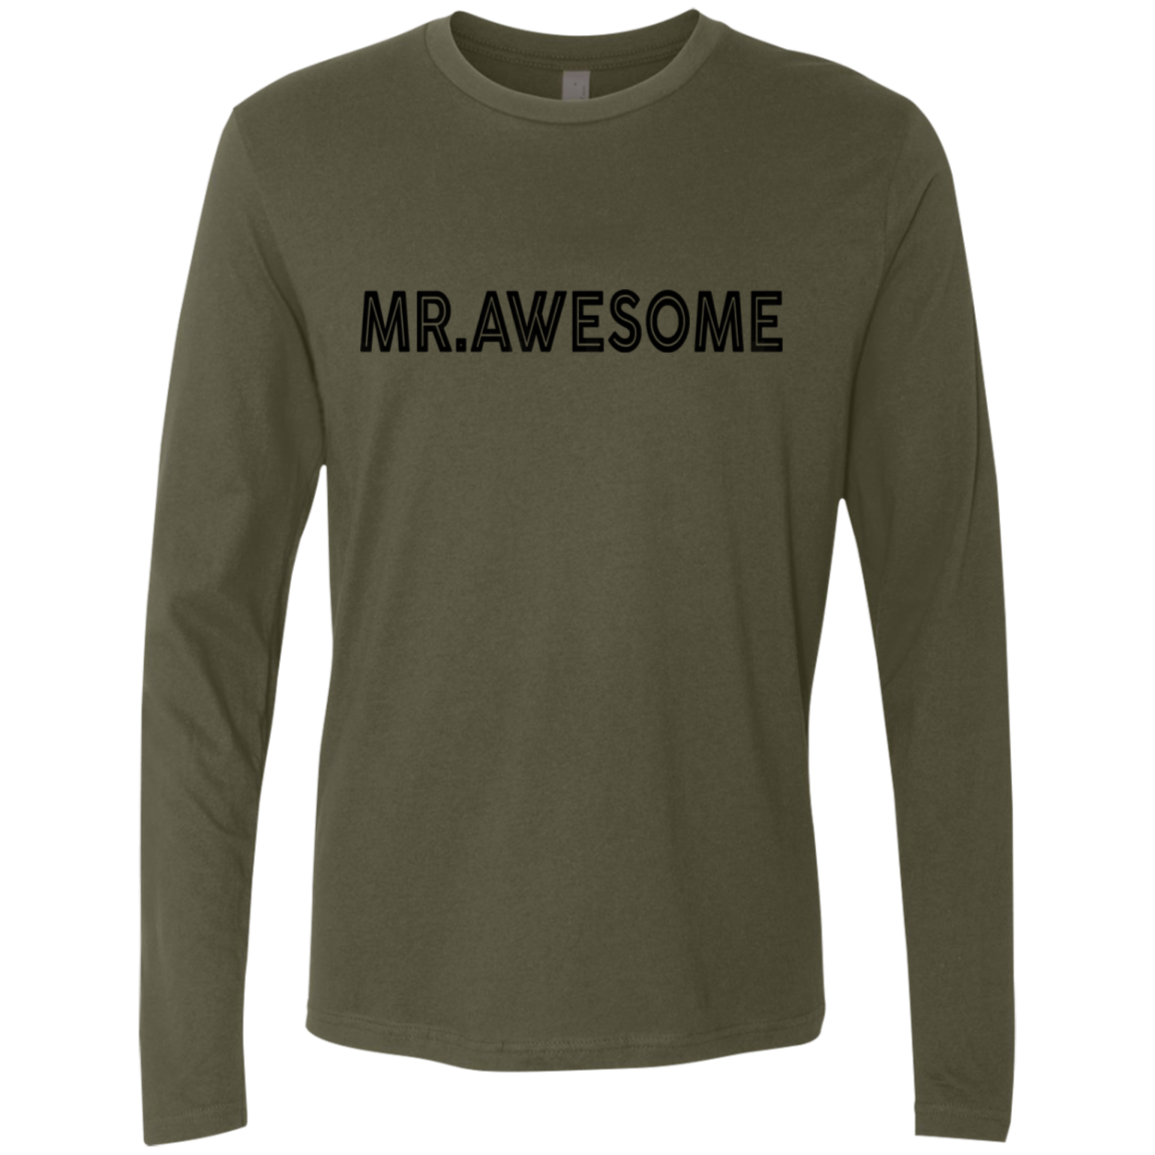 Mr. Awesome Men's Long Sleeve Tee